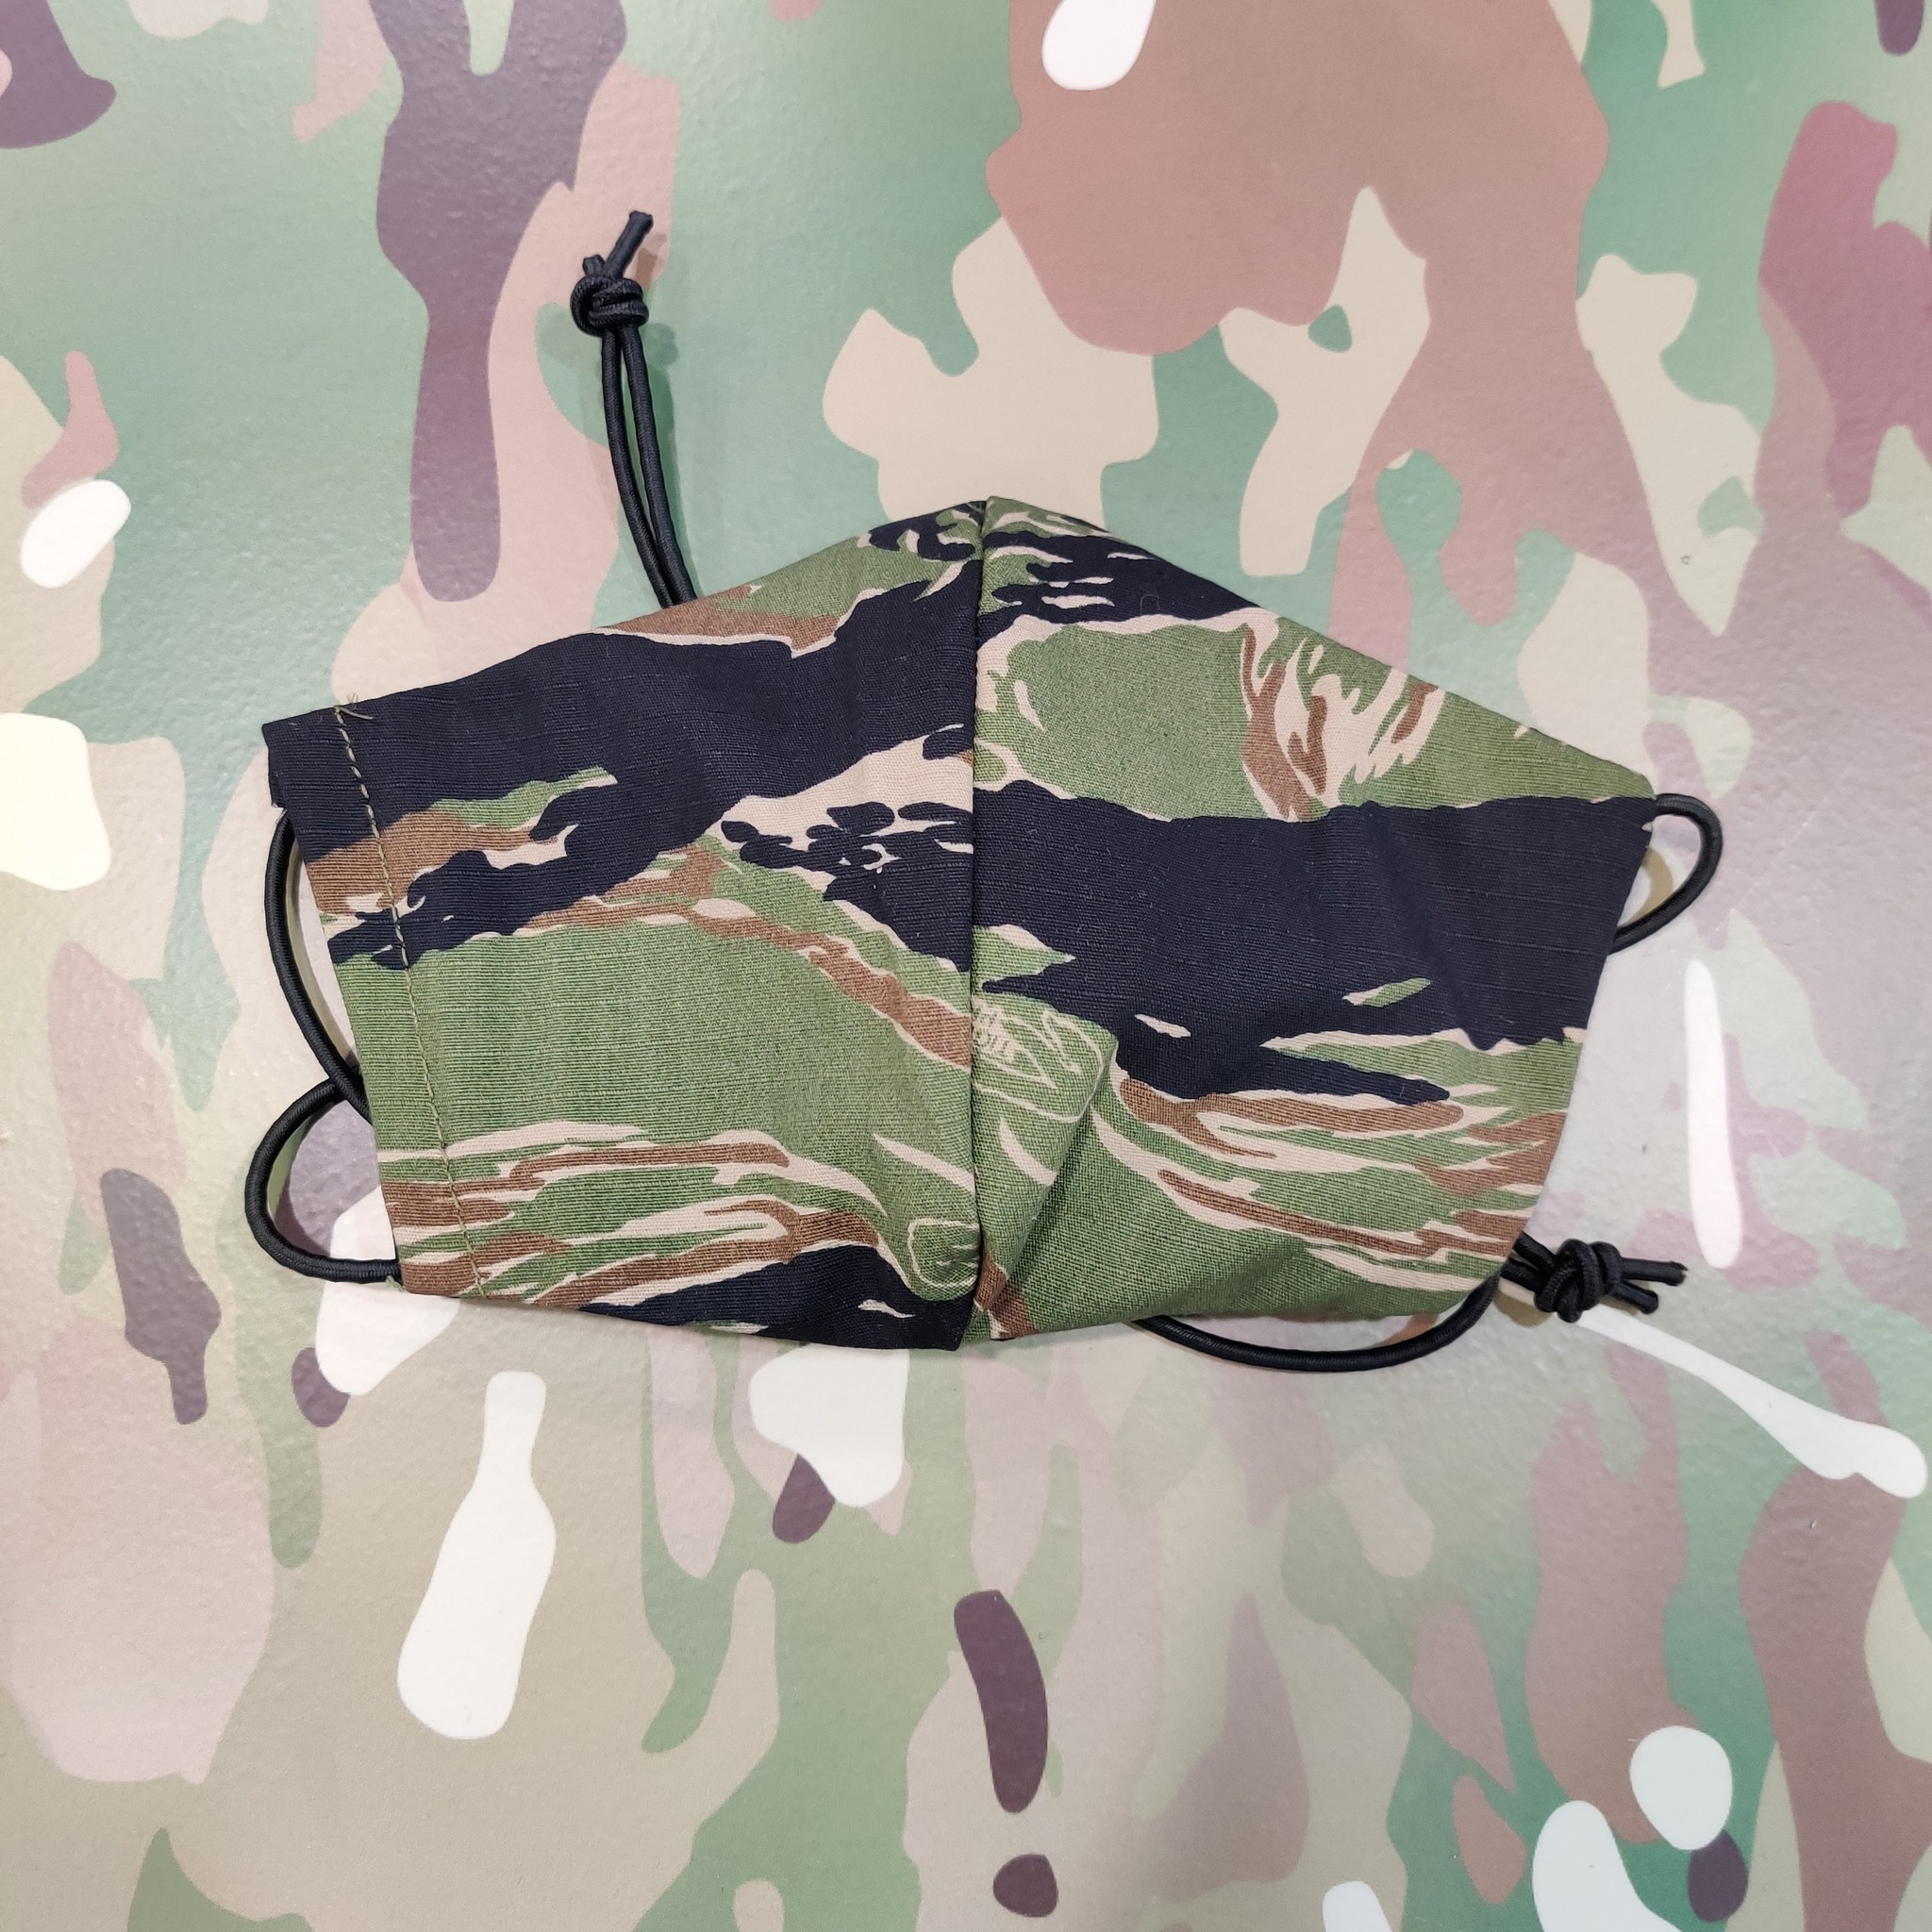 ICE Tactical ICE Tactical Social Comfort Mask V2 - Limited Edition